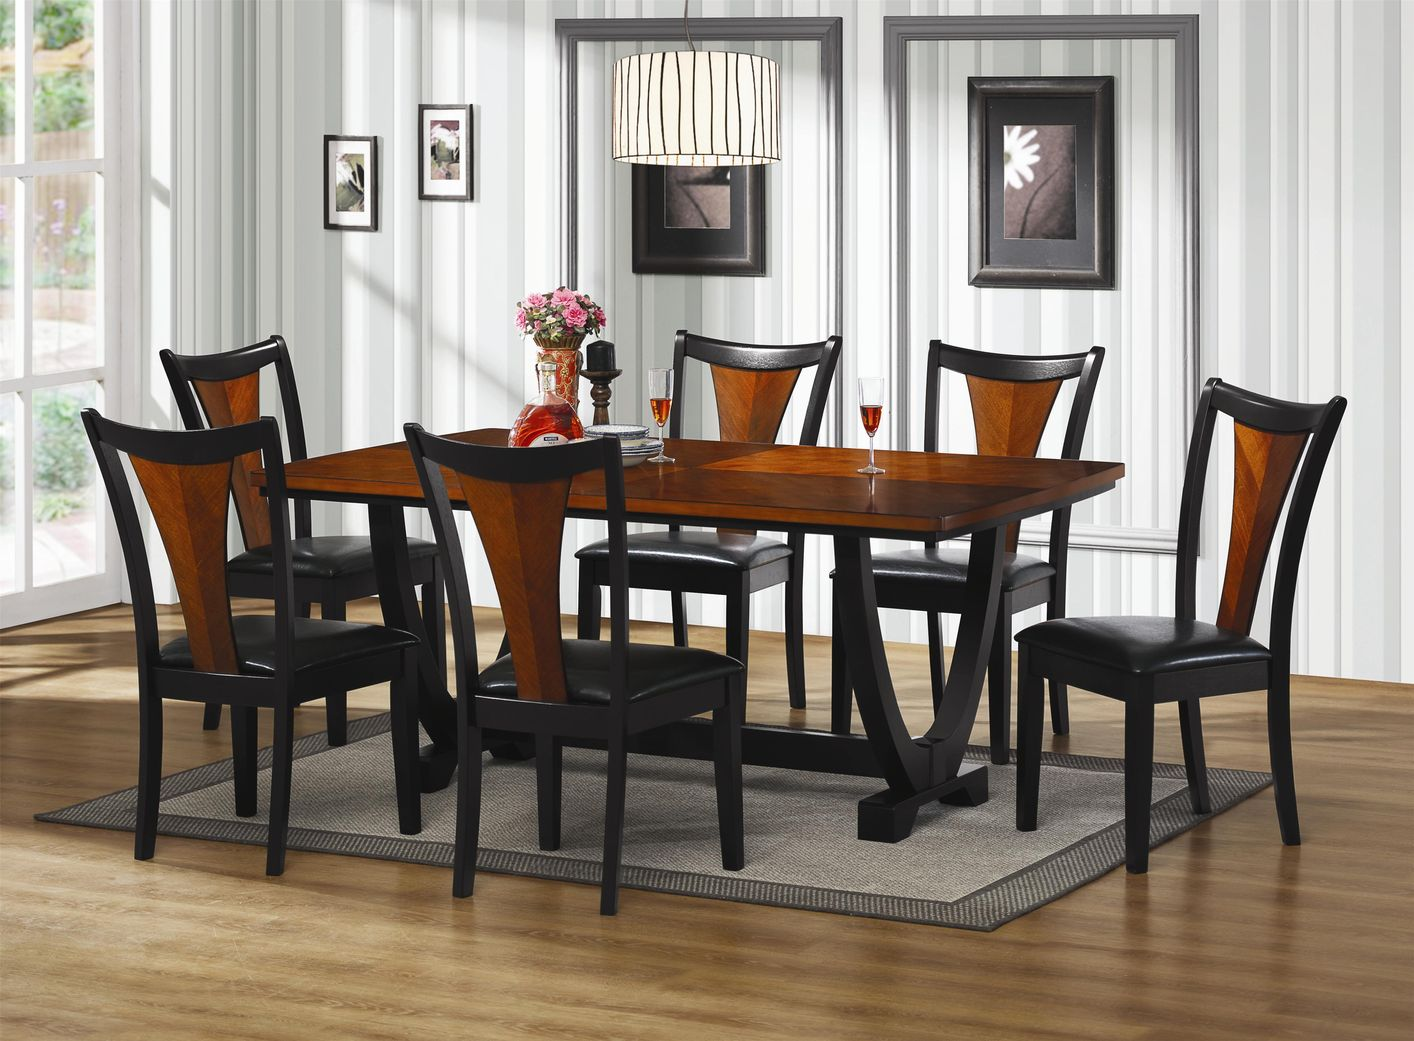 Wooden dining room chairs - Black And Silver Dining Room Chairs Design Ideas